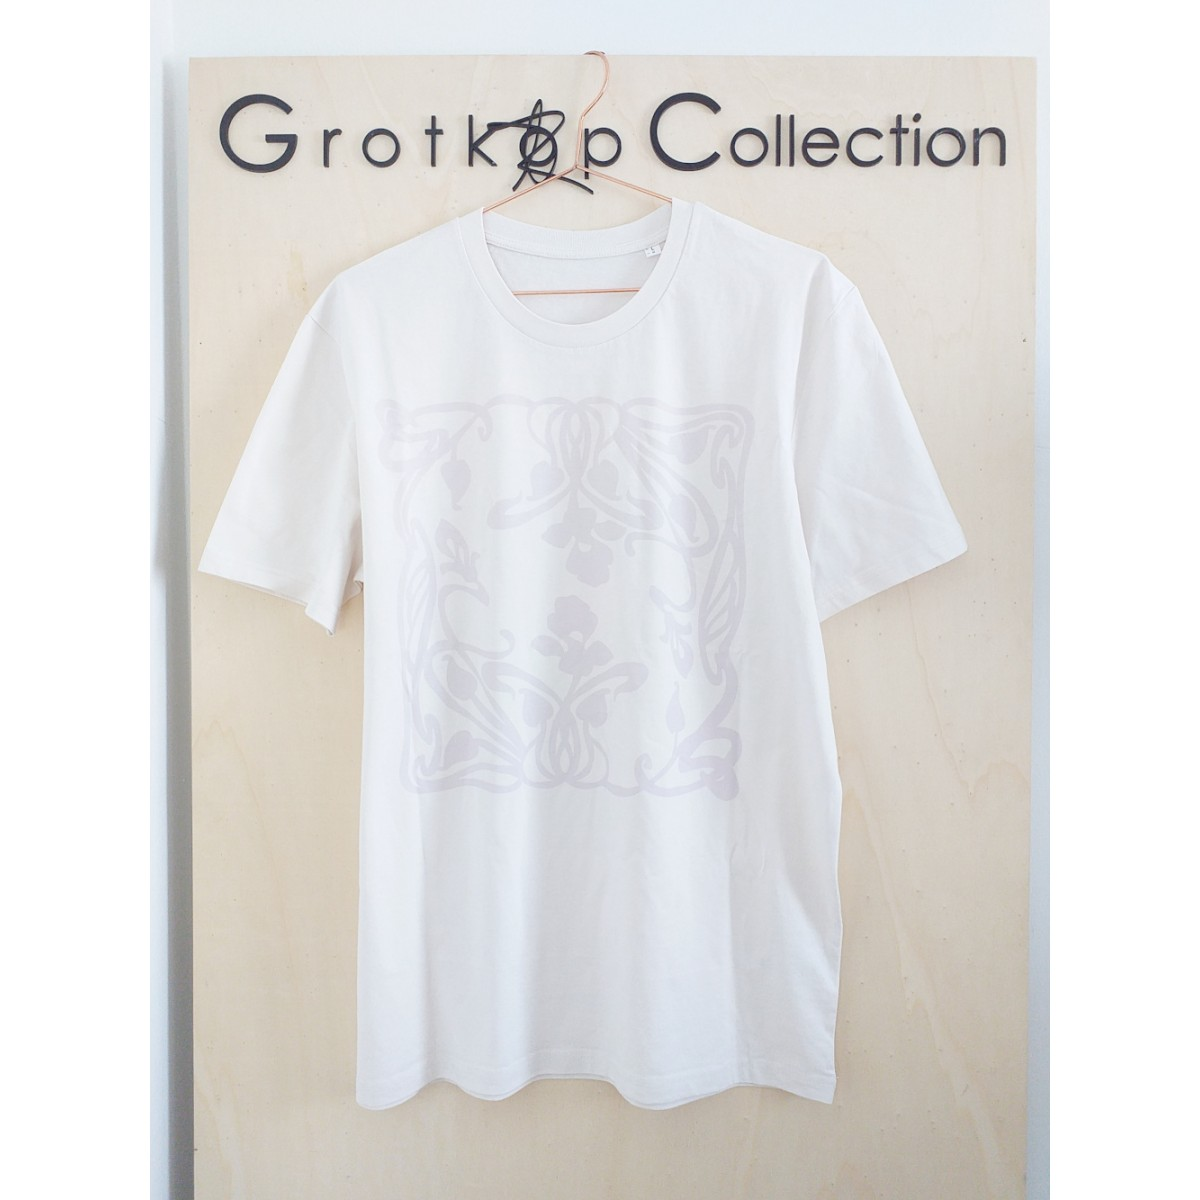 Grotkop Collection ArtNouveauSquare T-Shirt, GOTS zertifiziert